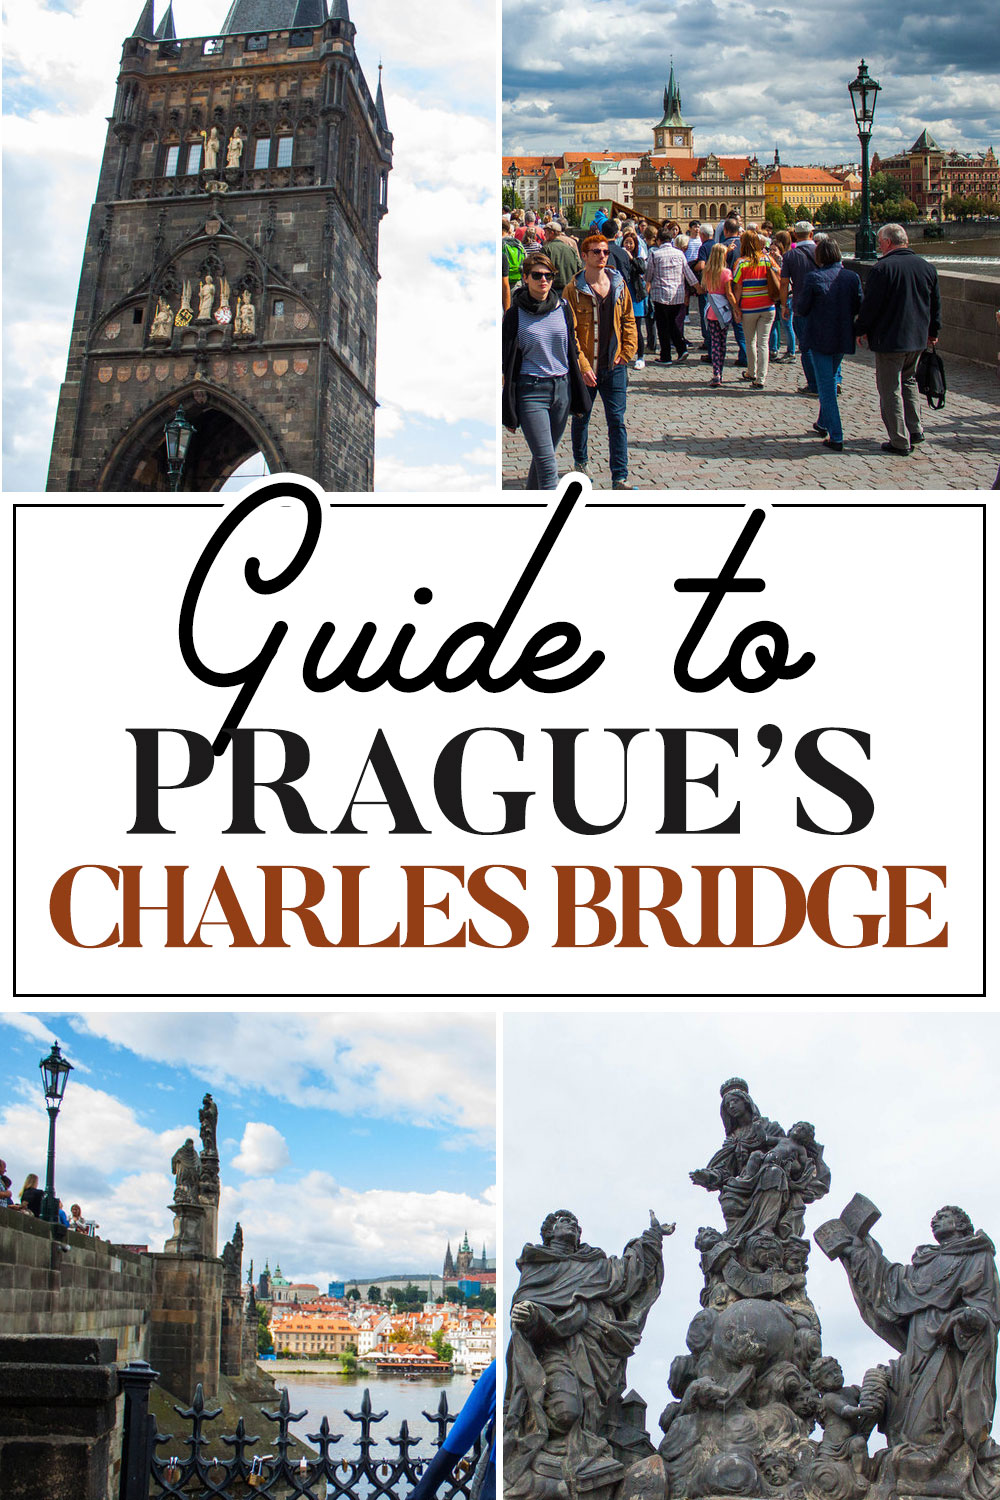 Guide-to-the-Charles-Bridge-Prague_The-Creative-Adventurer-.jpg